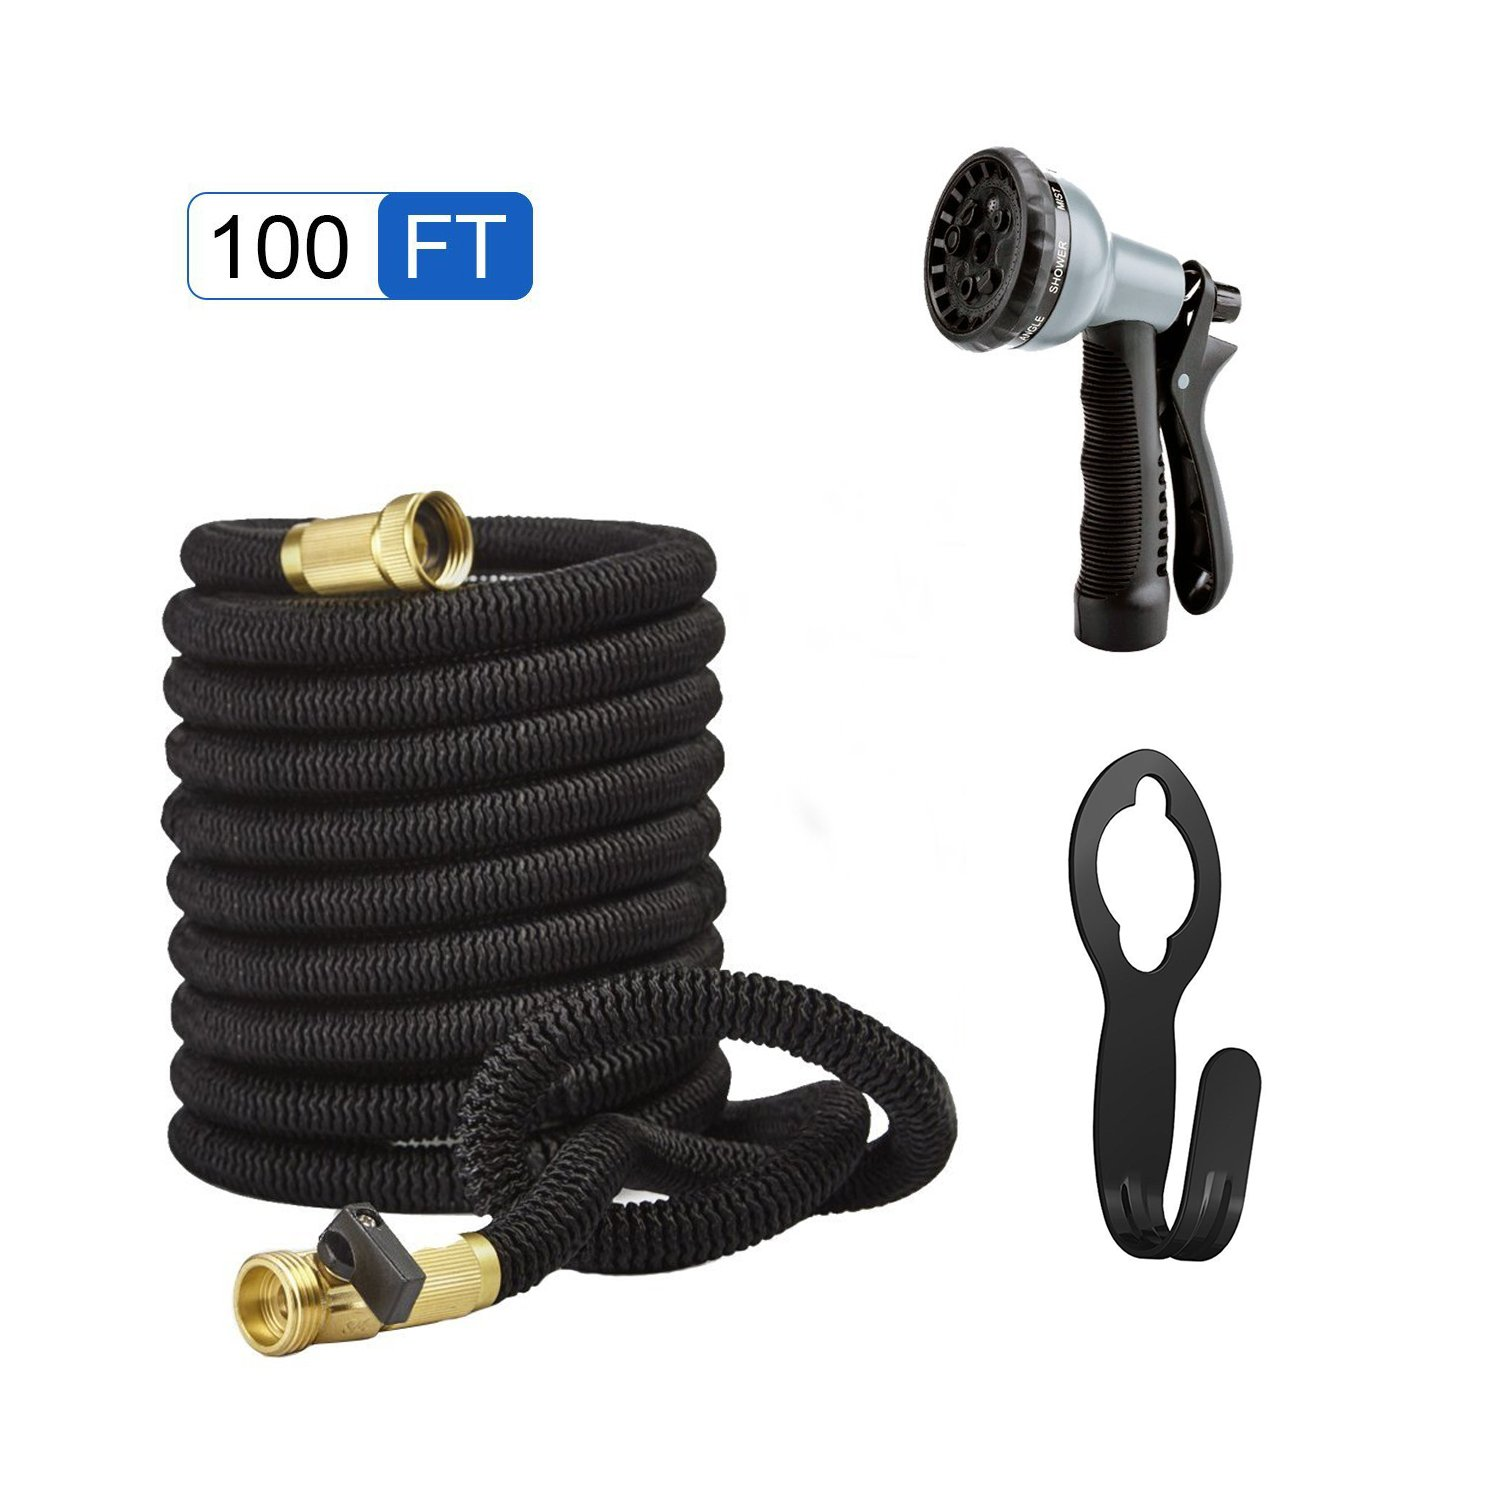 Garden Hose 100ft Expanding Garden Collapsible Flexible Lightweight Hose ,Solid Brass Connectors,Hose Holder and 8 Pattern Spray Nozzle Water Hose Set (Black) (100 Feet)